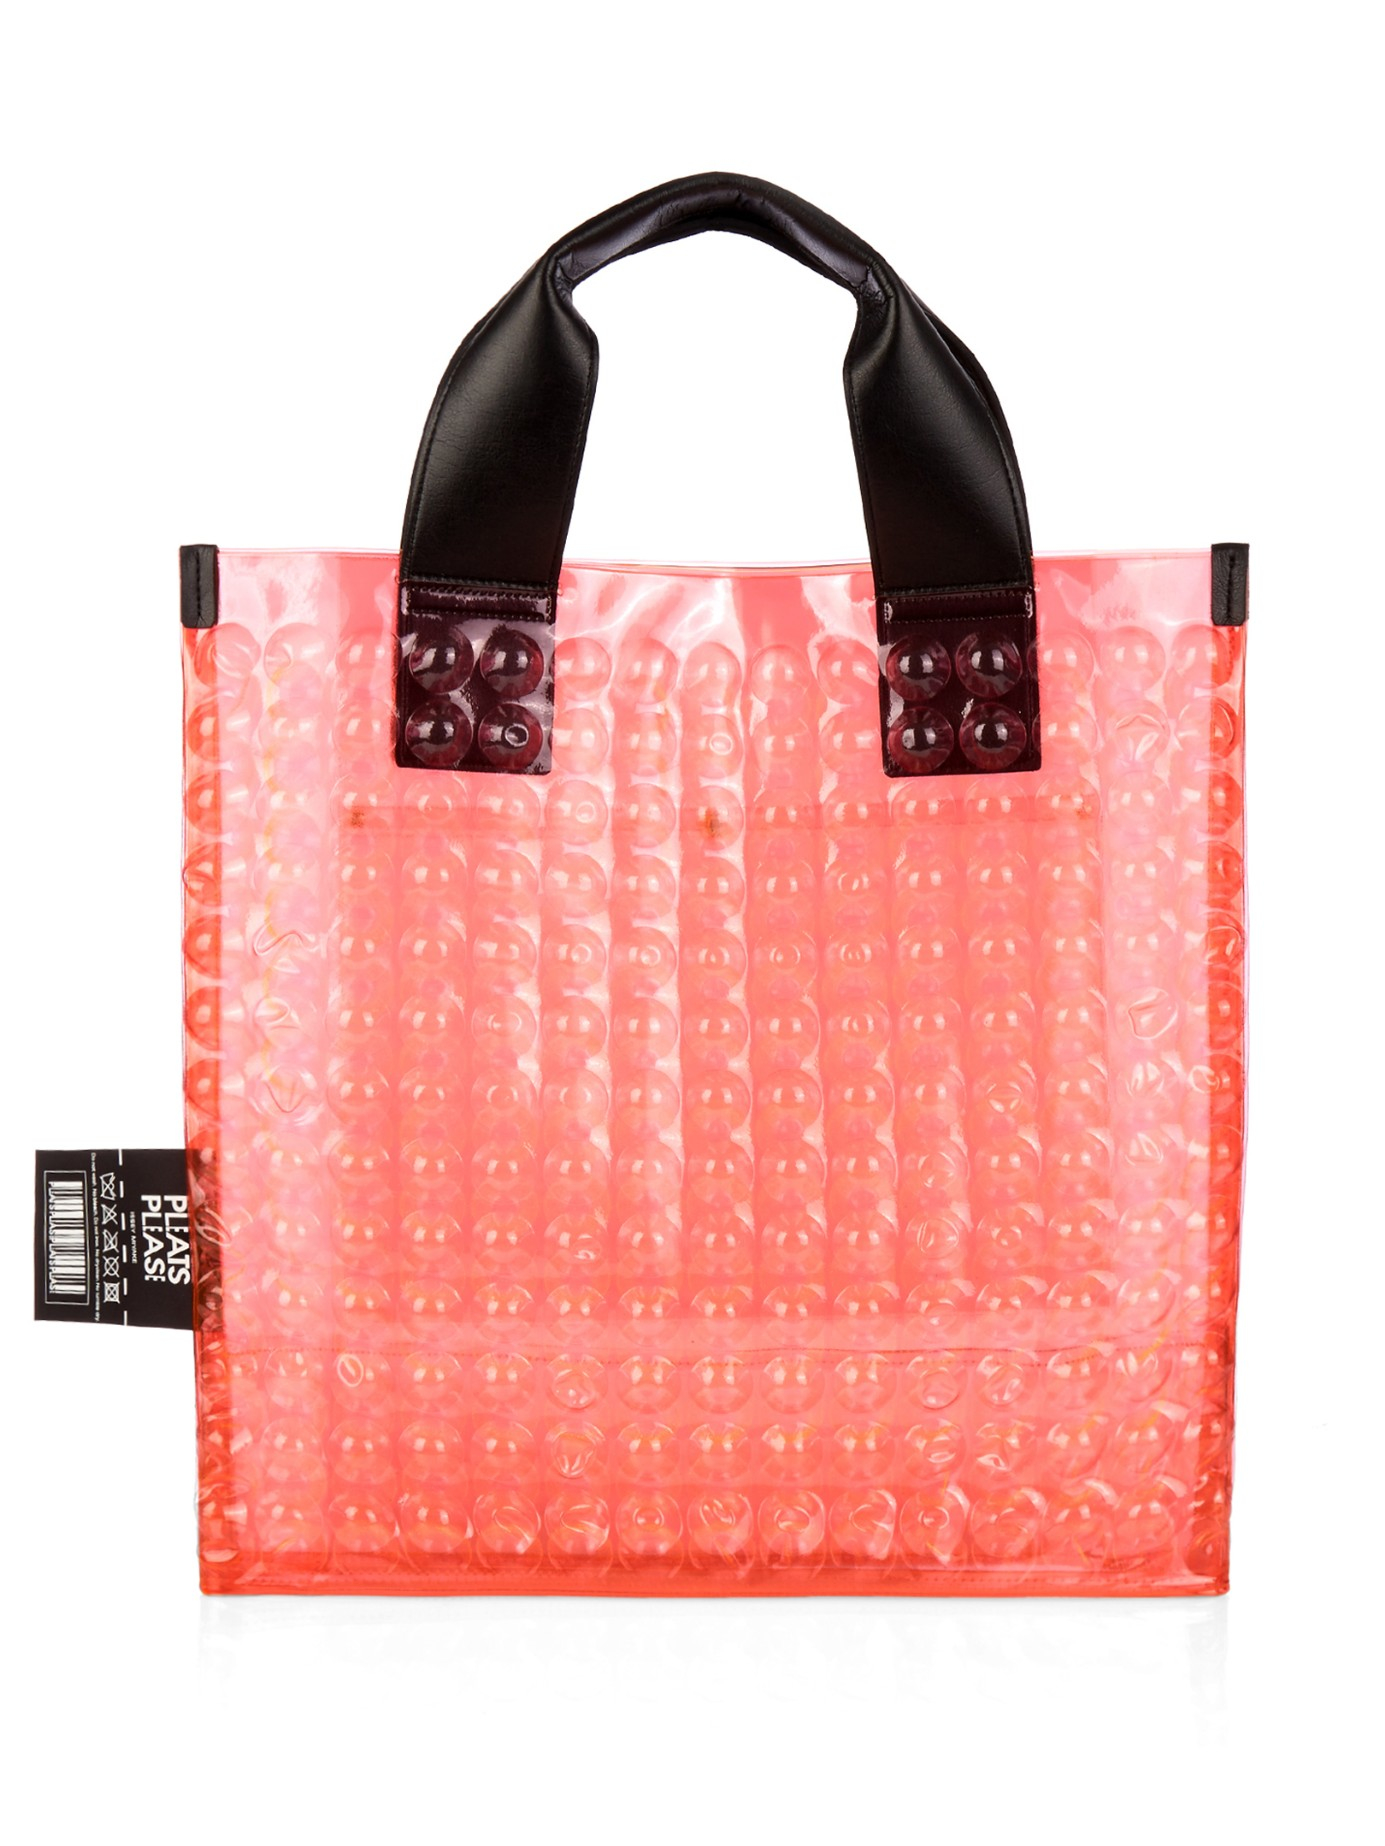 Lyst - Pleats Please Issey Miyake Puchi Puchi Bubble Tote in Black 5a472c7d63